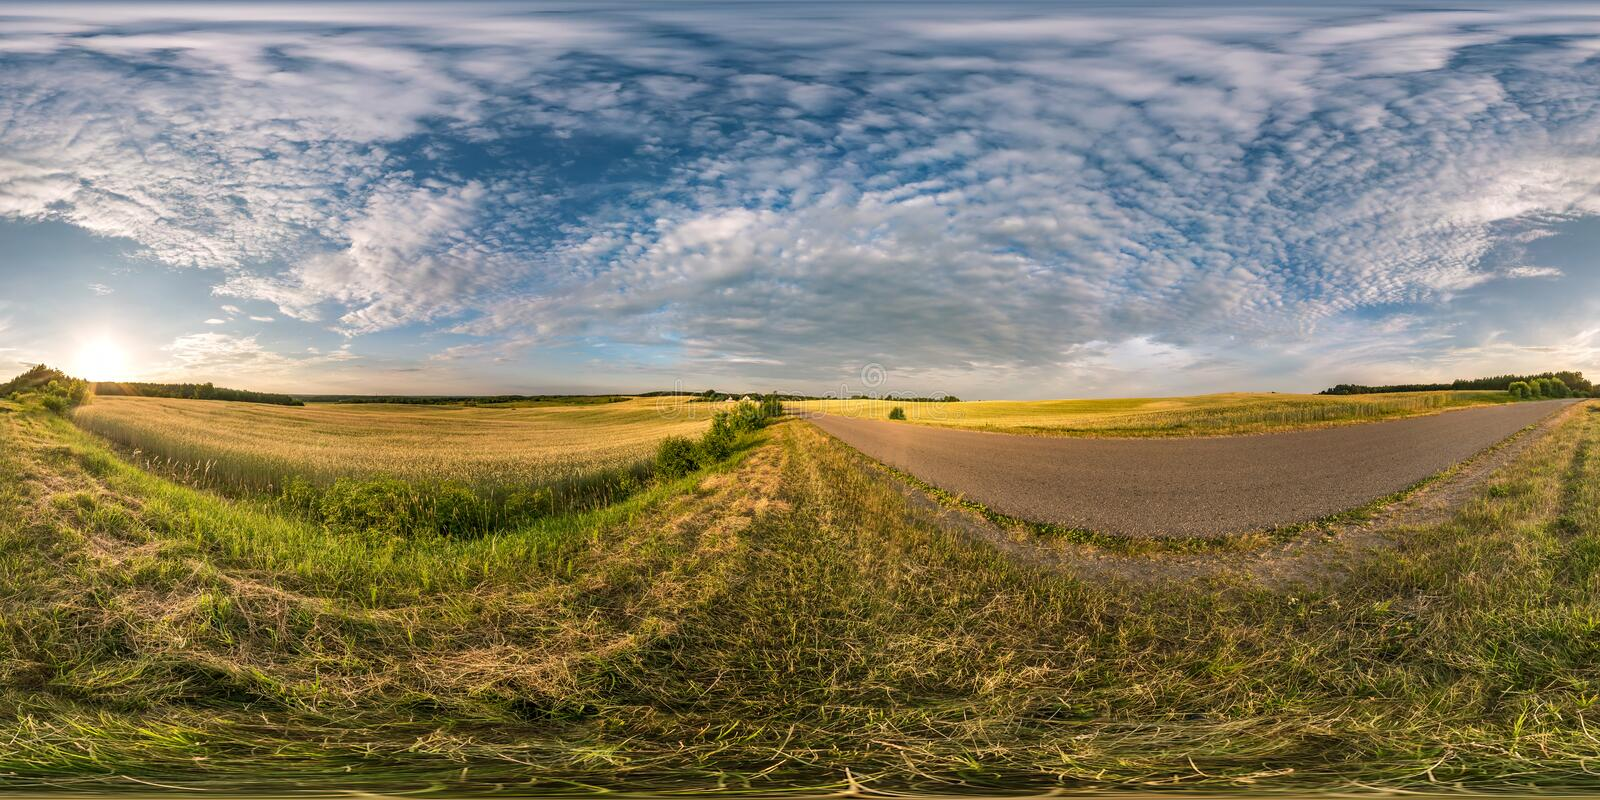 Spherical hdri panorama 360 degrees angle view near asphalt road among fields in summer evening sunset with cirrocumulus clouds in. Equirectangular projection royalty free stock image